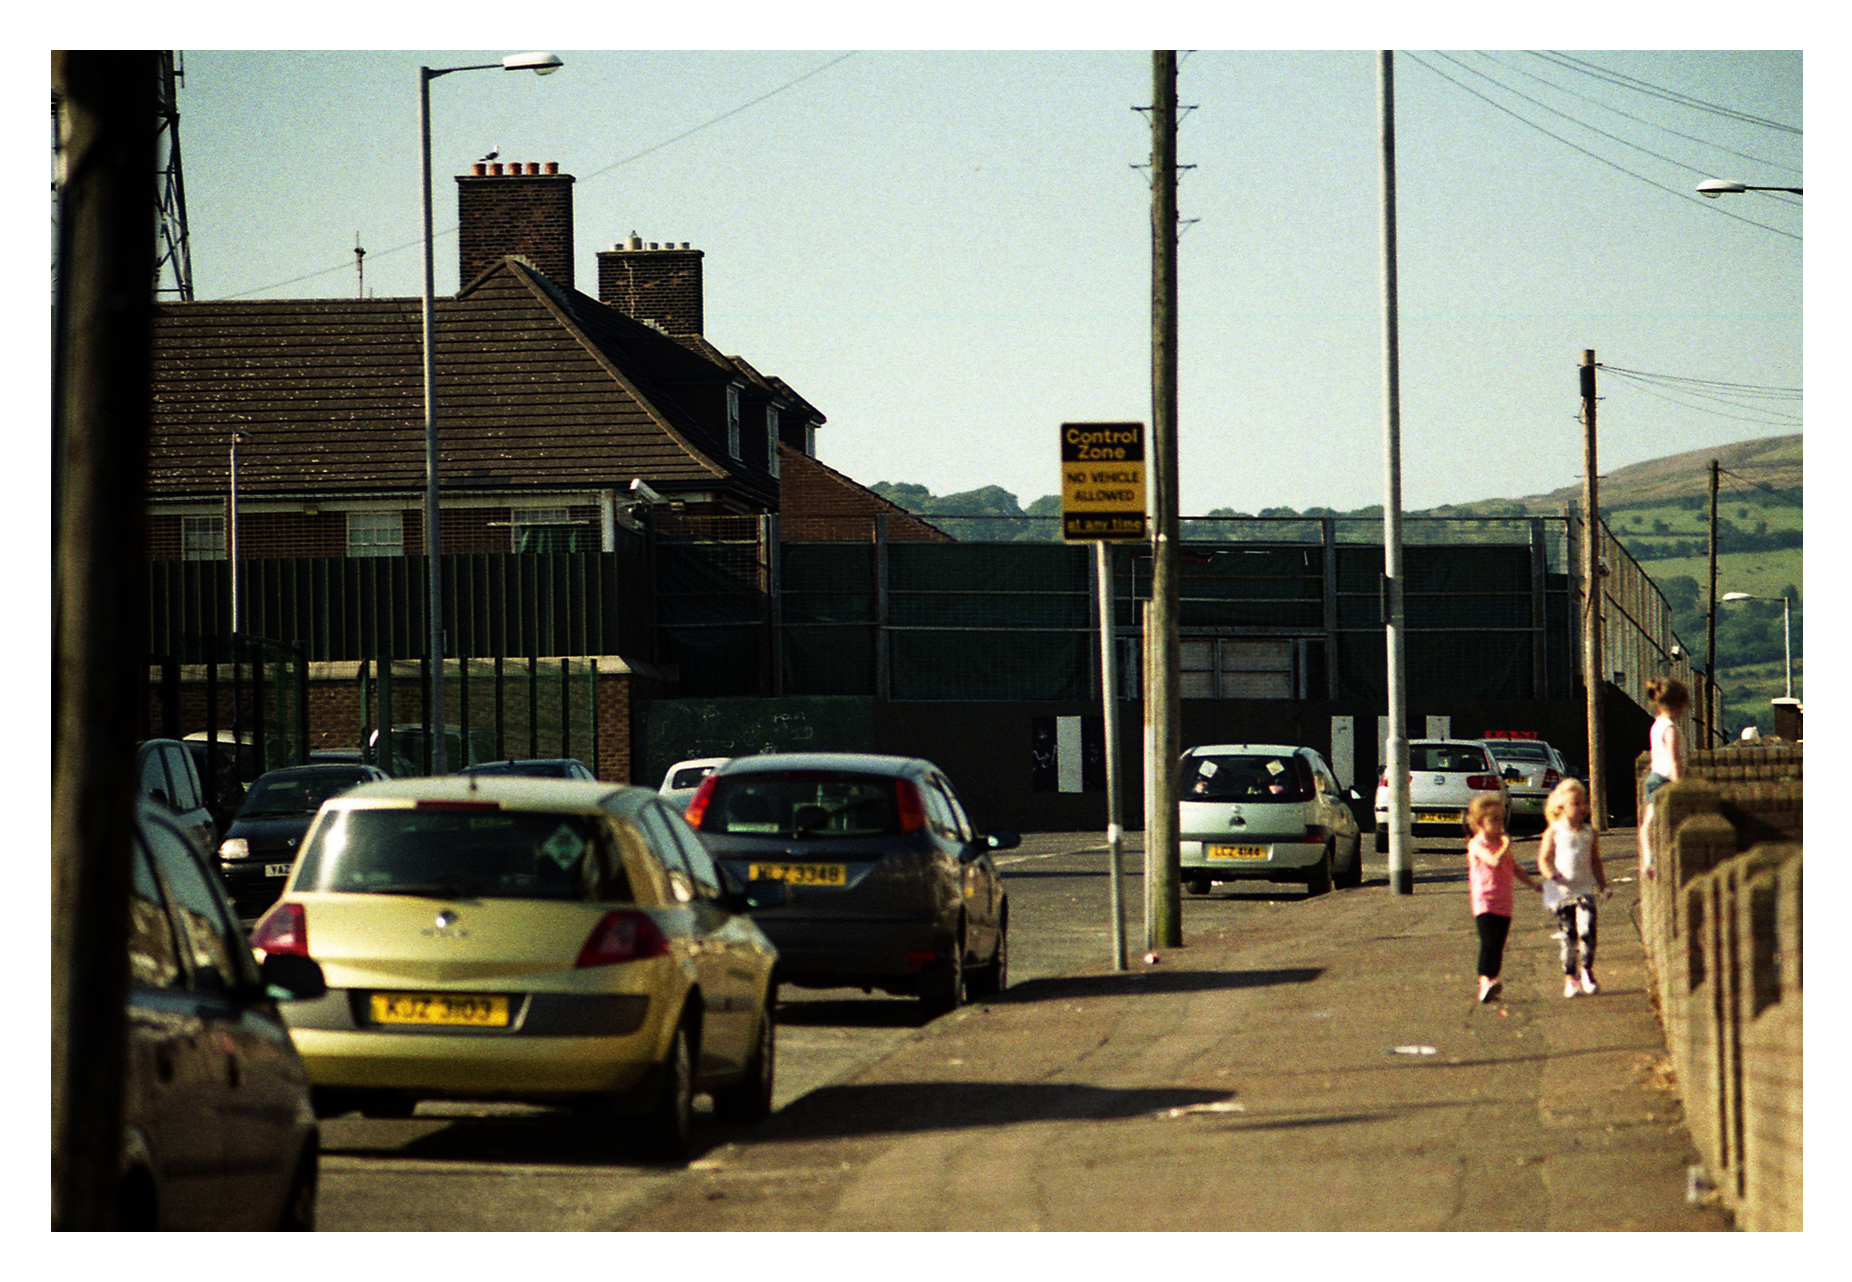 OldparkRoad_RUCStation_Children_bdr.jpg